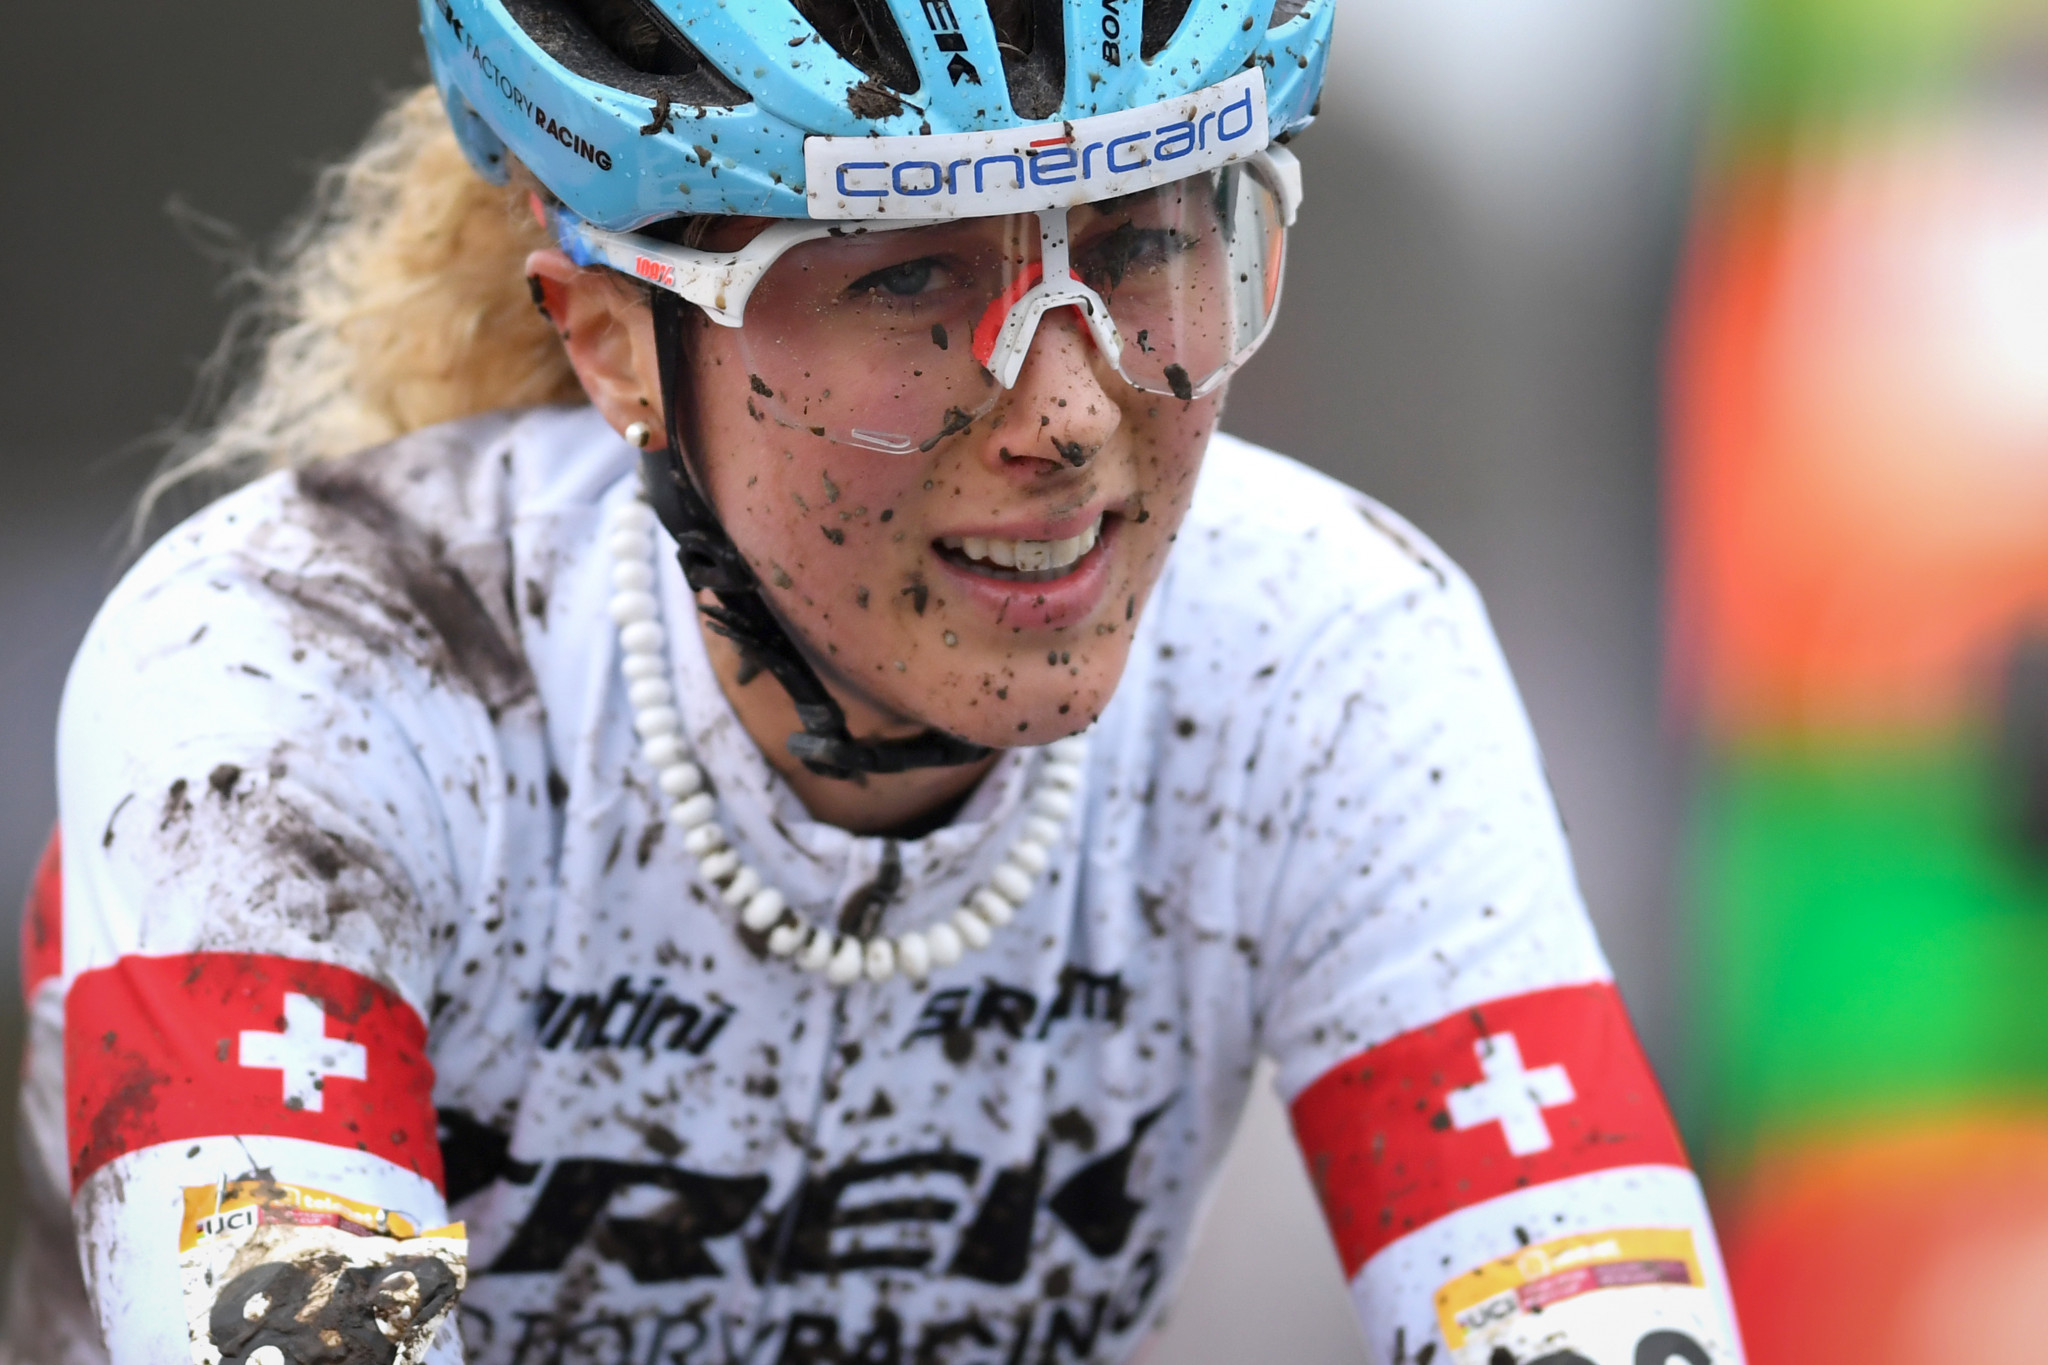 Jolanda Neff is the defending women's World Cup champion in the cross-country discipline ©Getty Images